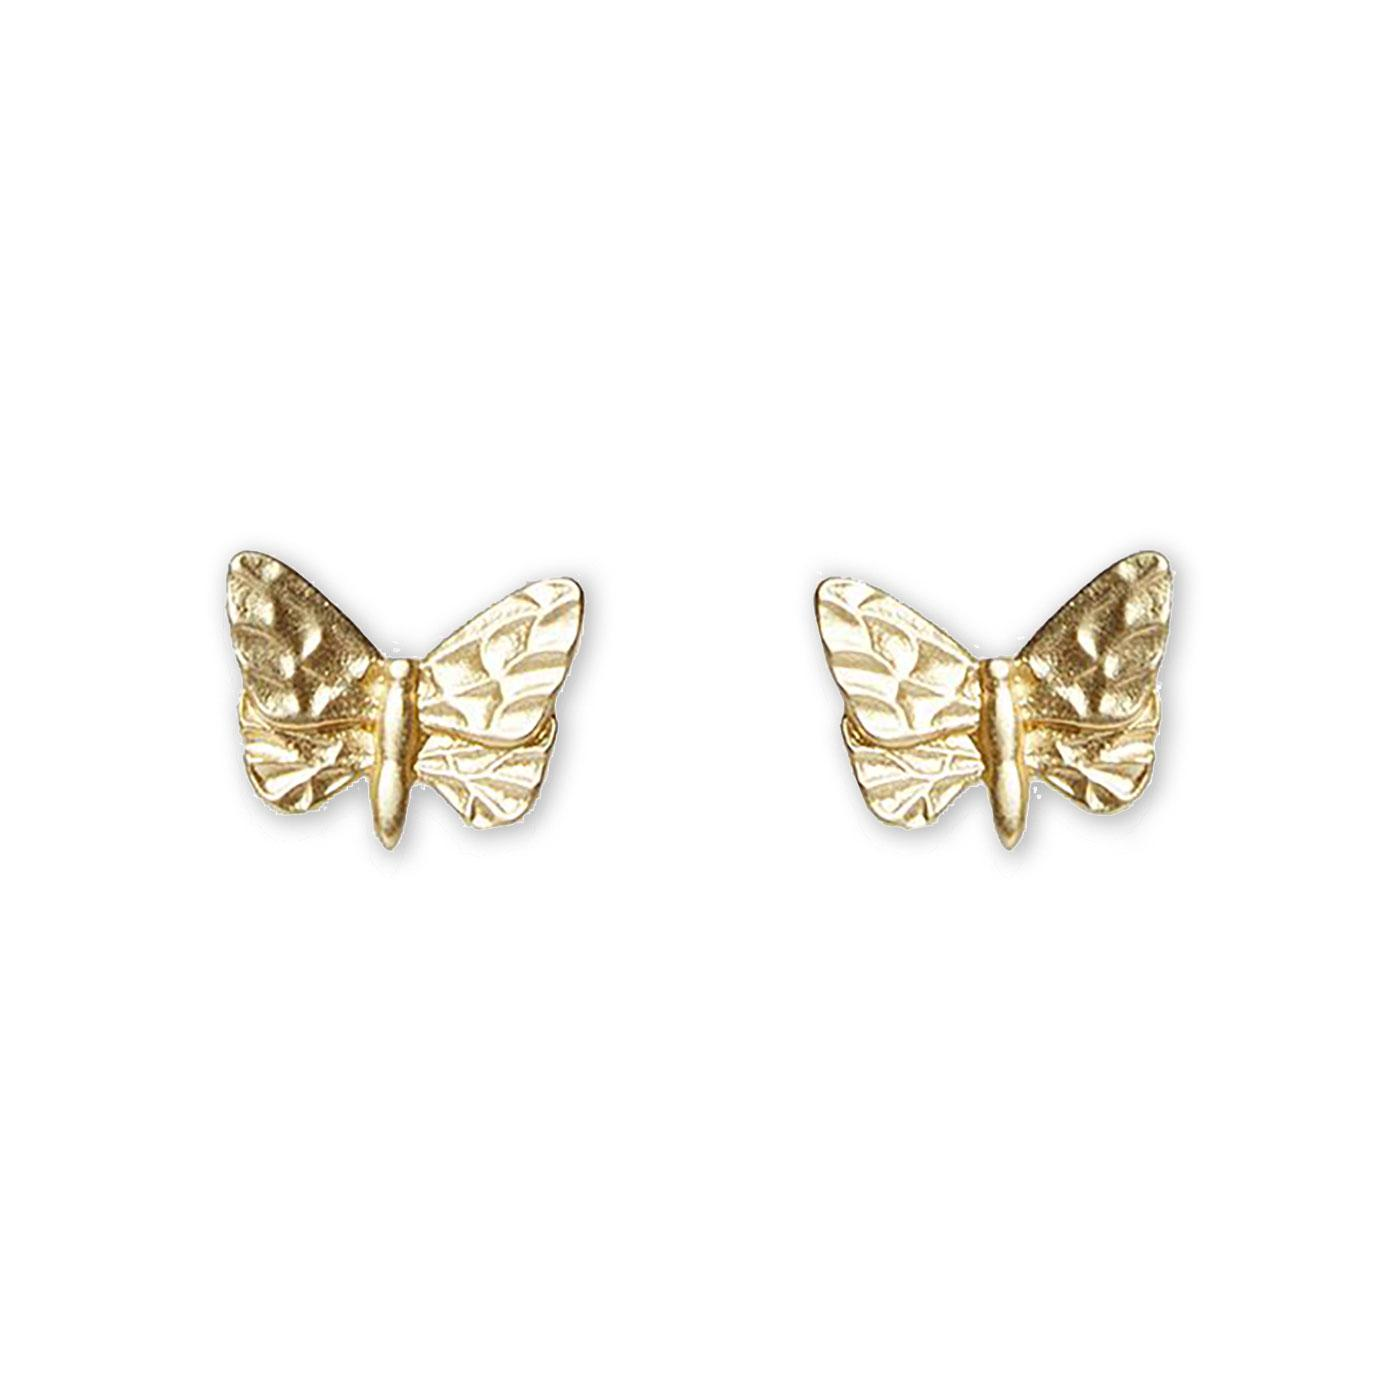 Abdon LOUCHE Vintage Butterfly Stud Earrings